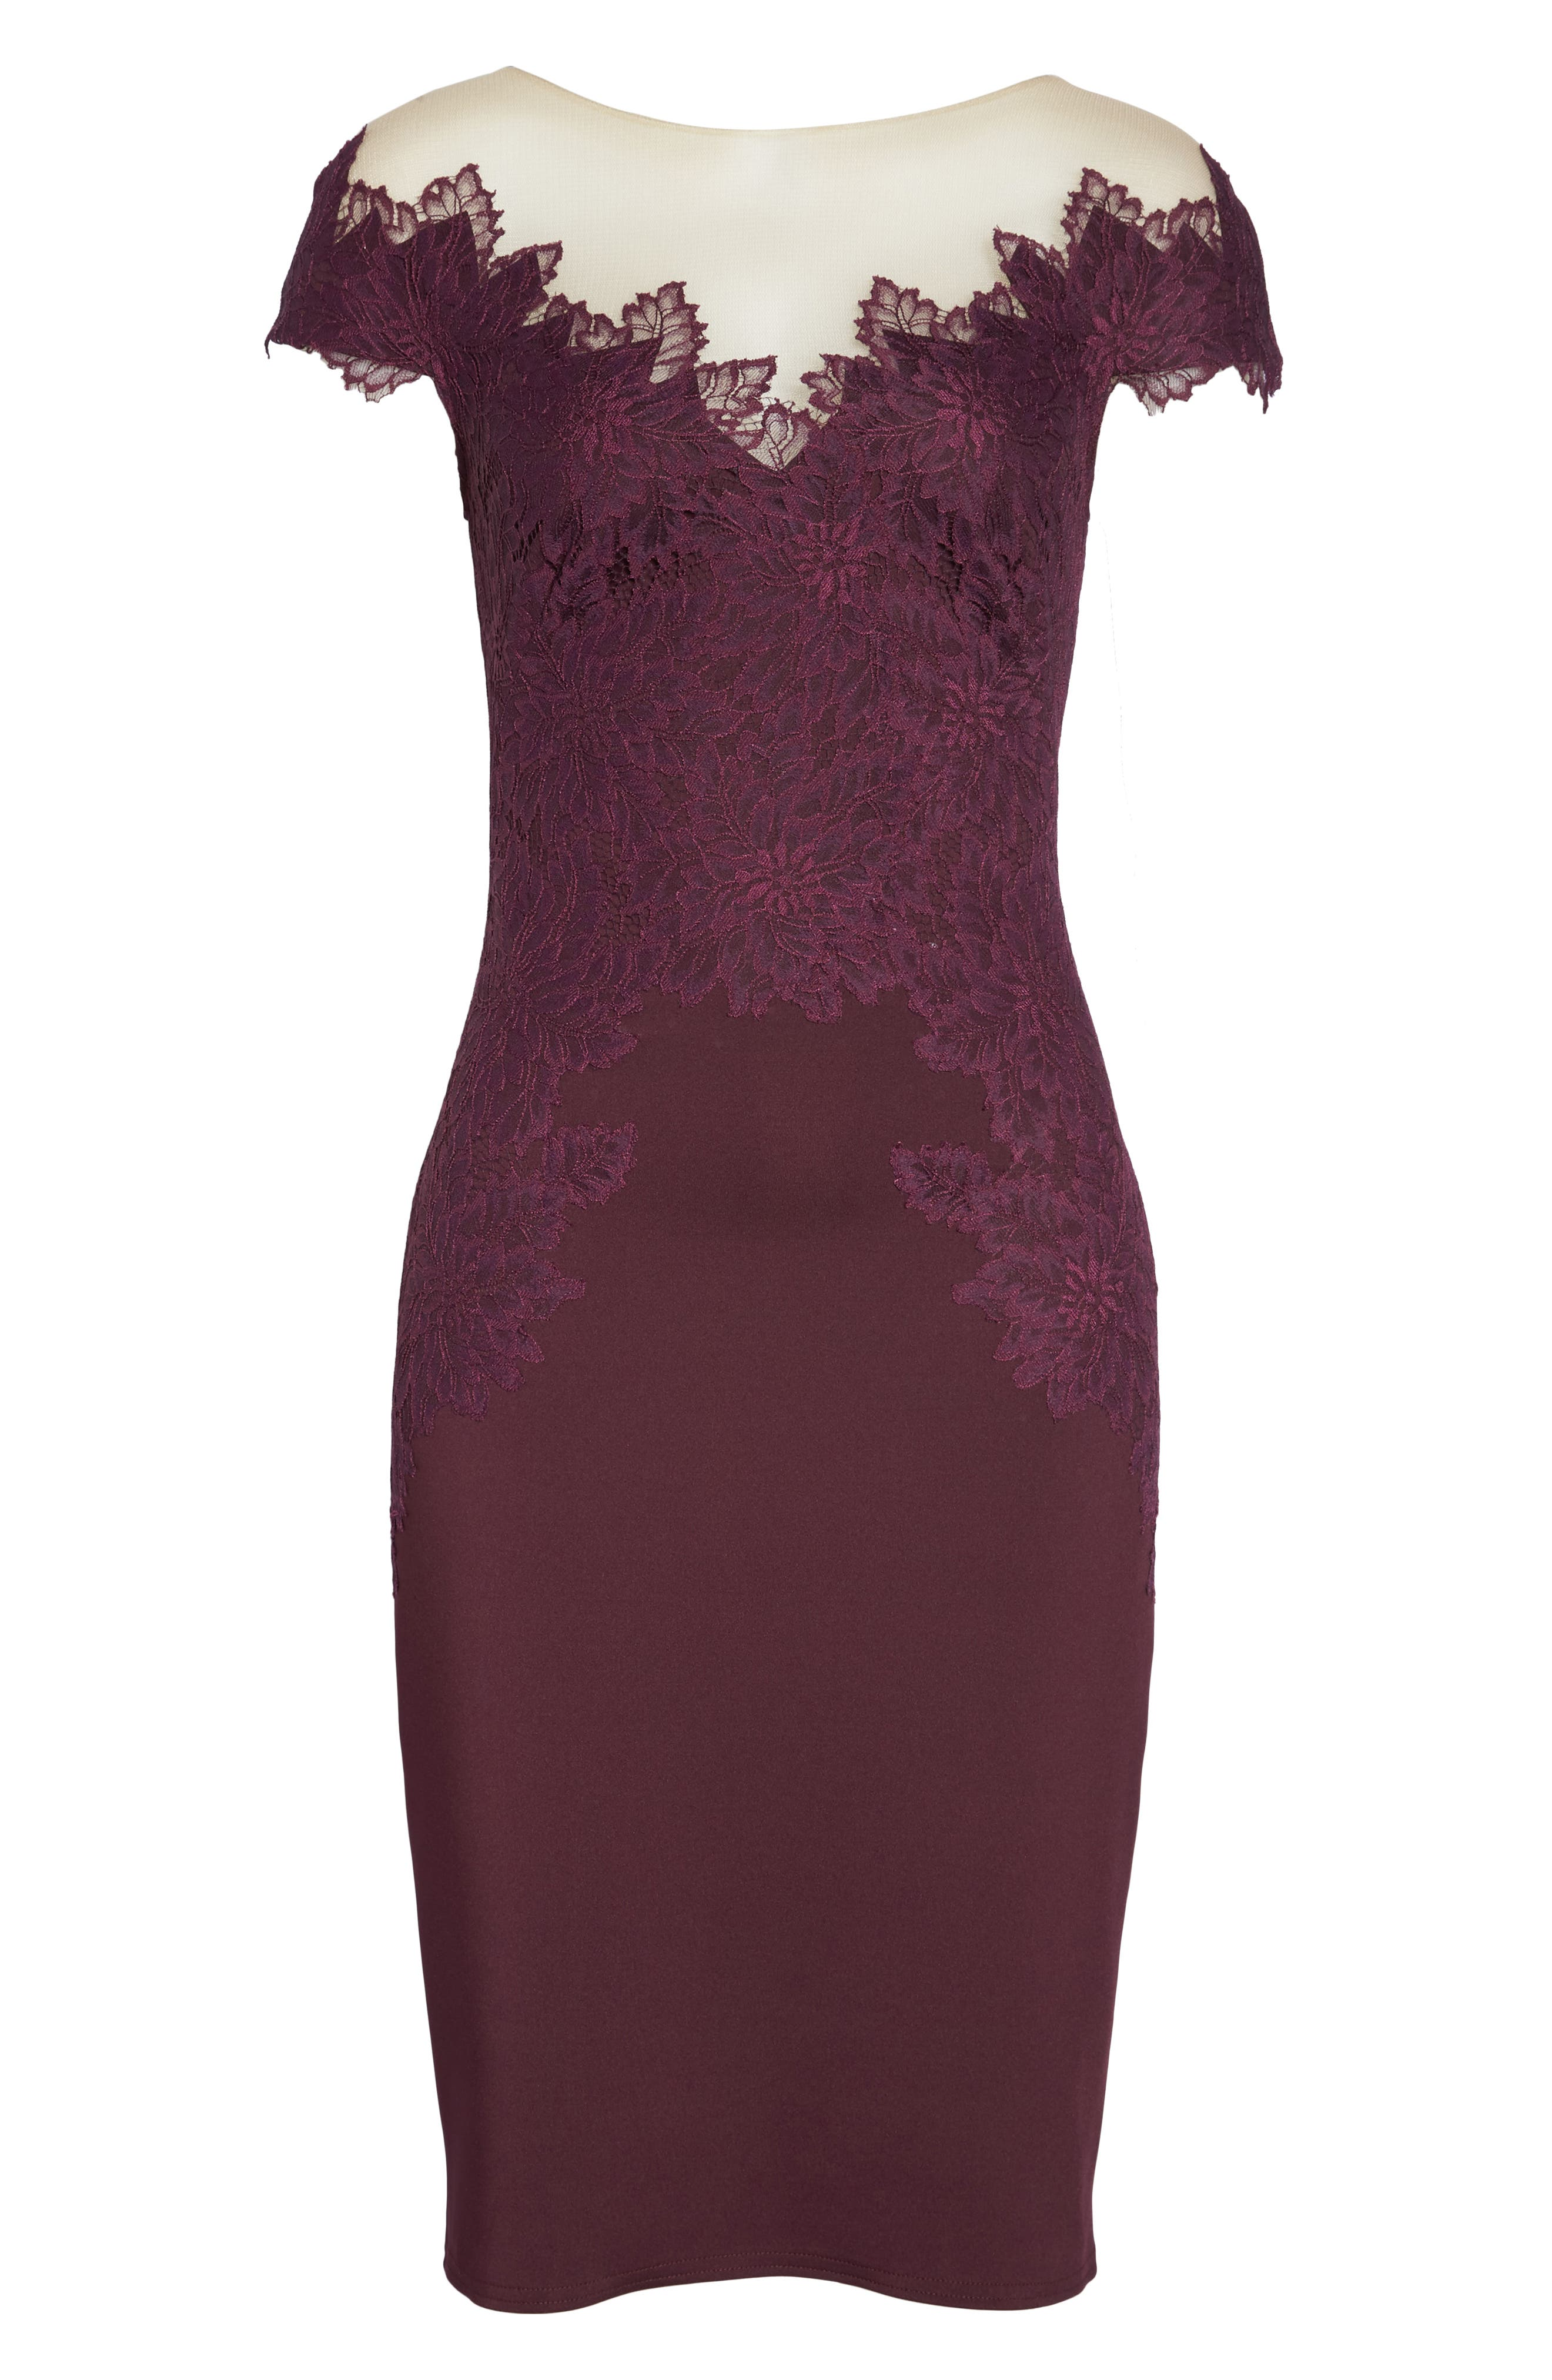 Lace Embellished Body-Con Dress,                             Alternate thumbnail 6, color,                             510